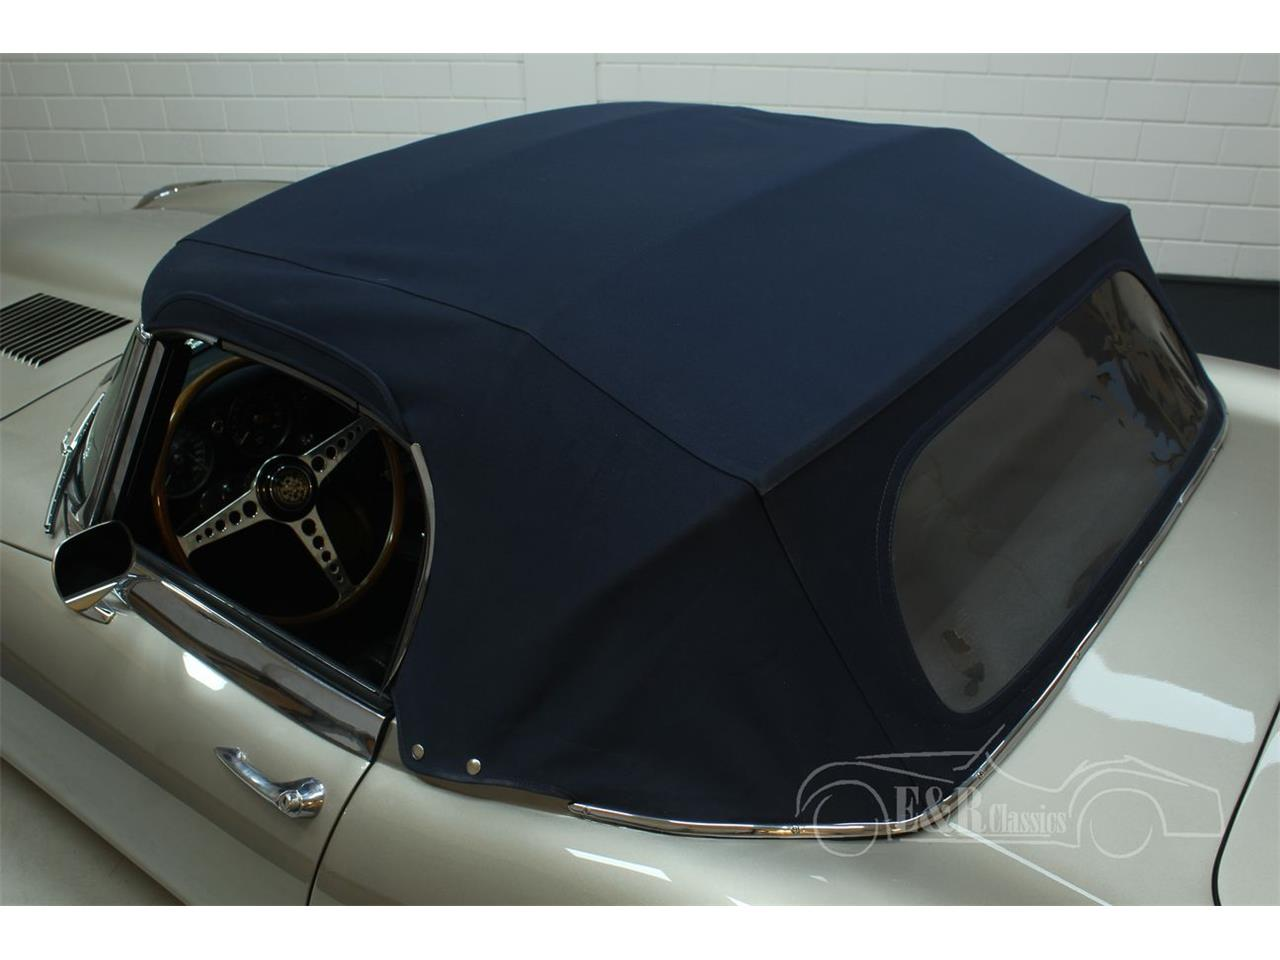 Large Picture of Classic '70 Jaguar E-Type located in Waalwijk - Keine Angabe - Offered by E & R Classics - PH40